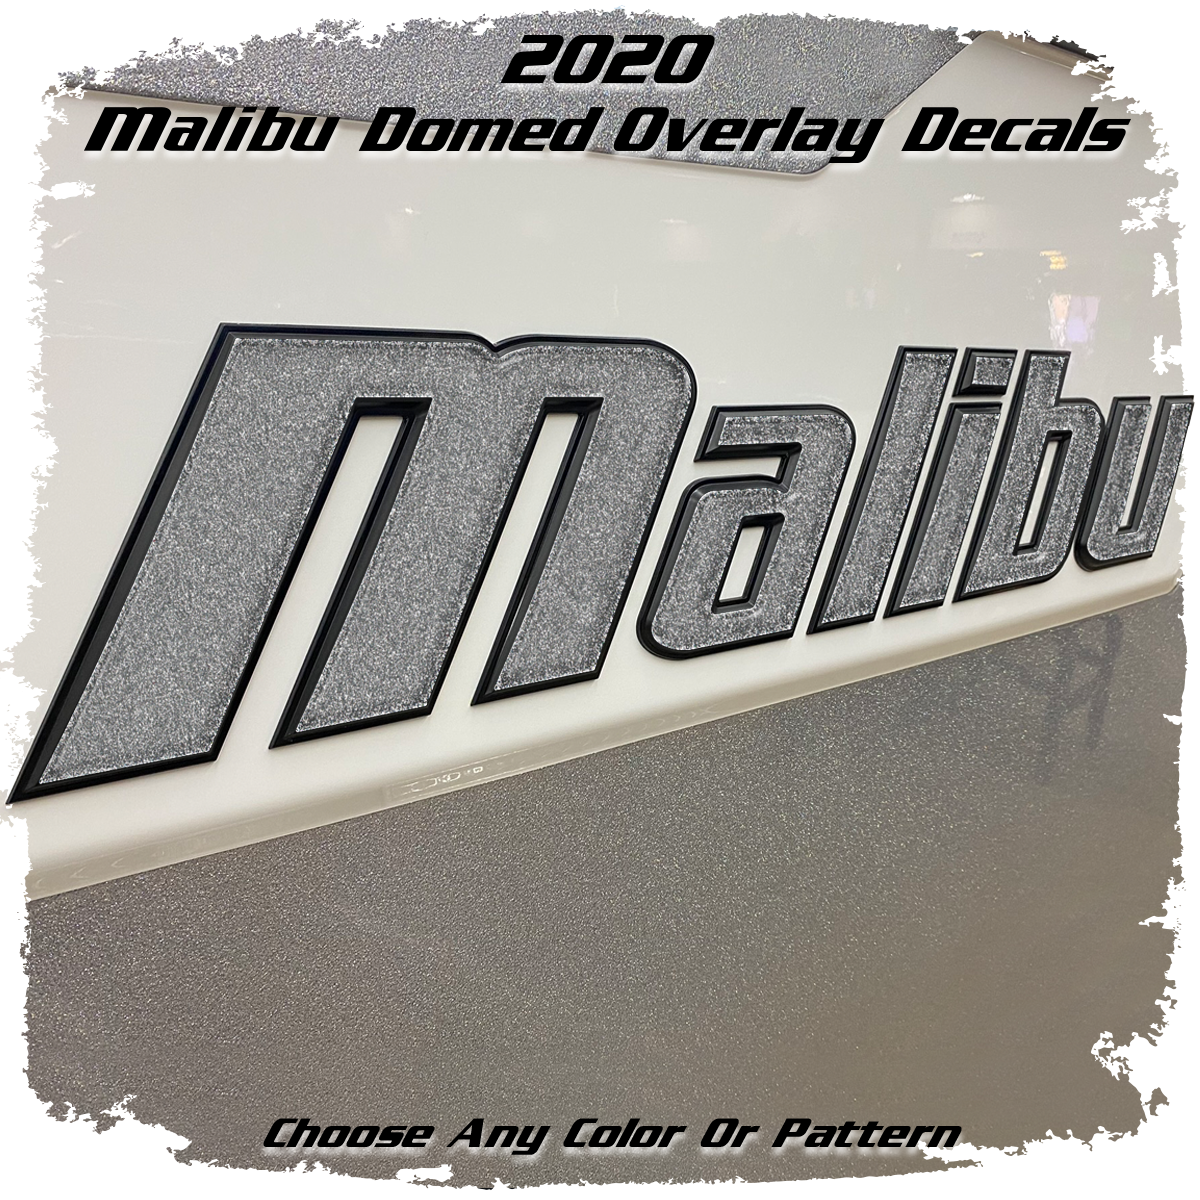 Domed Malibu Wakesetter Overlay 2020, Choose Your Color